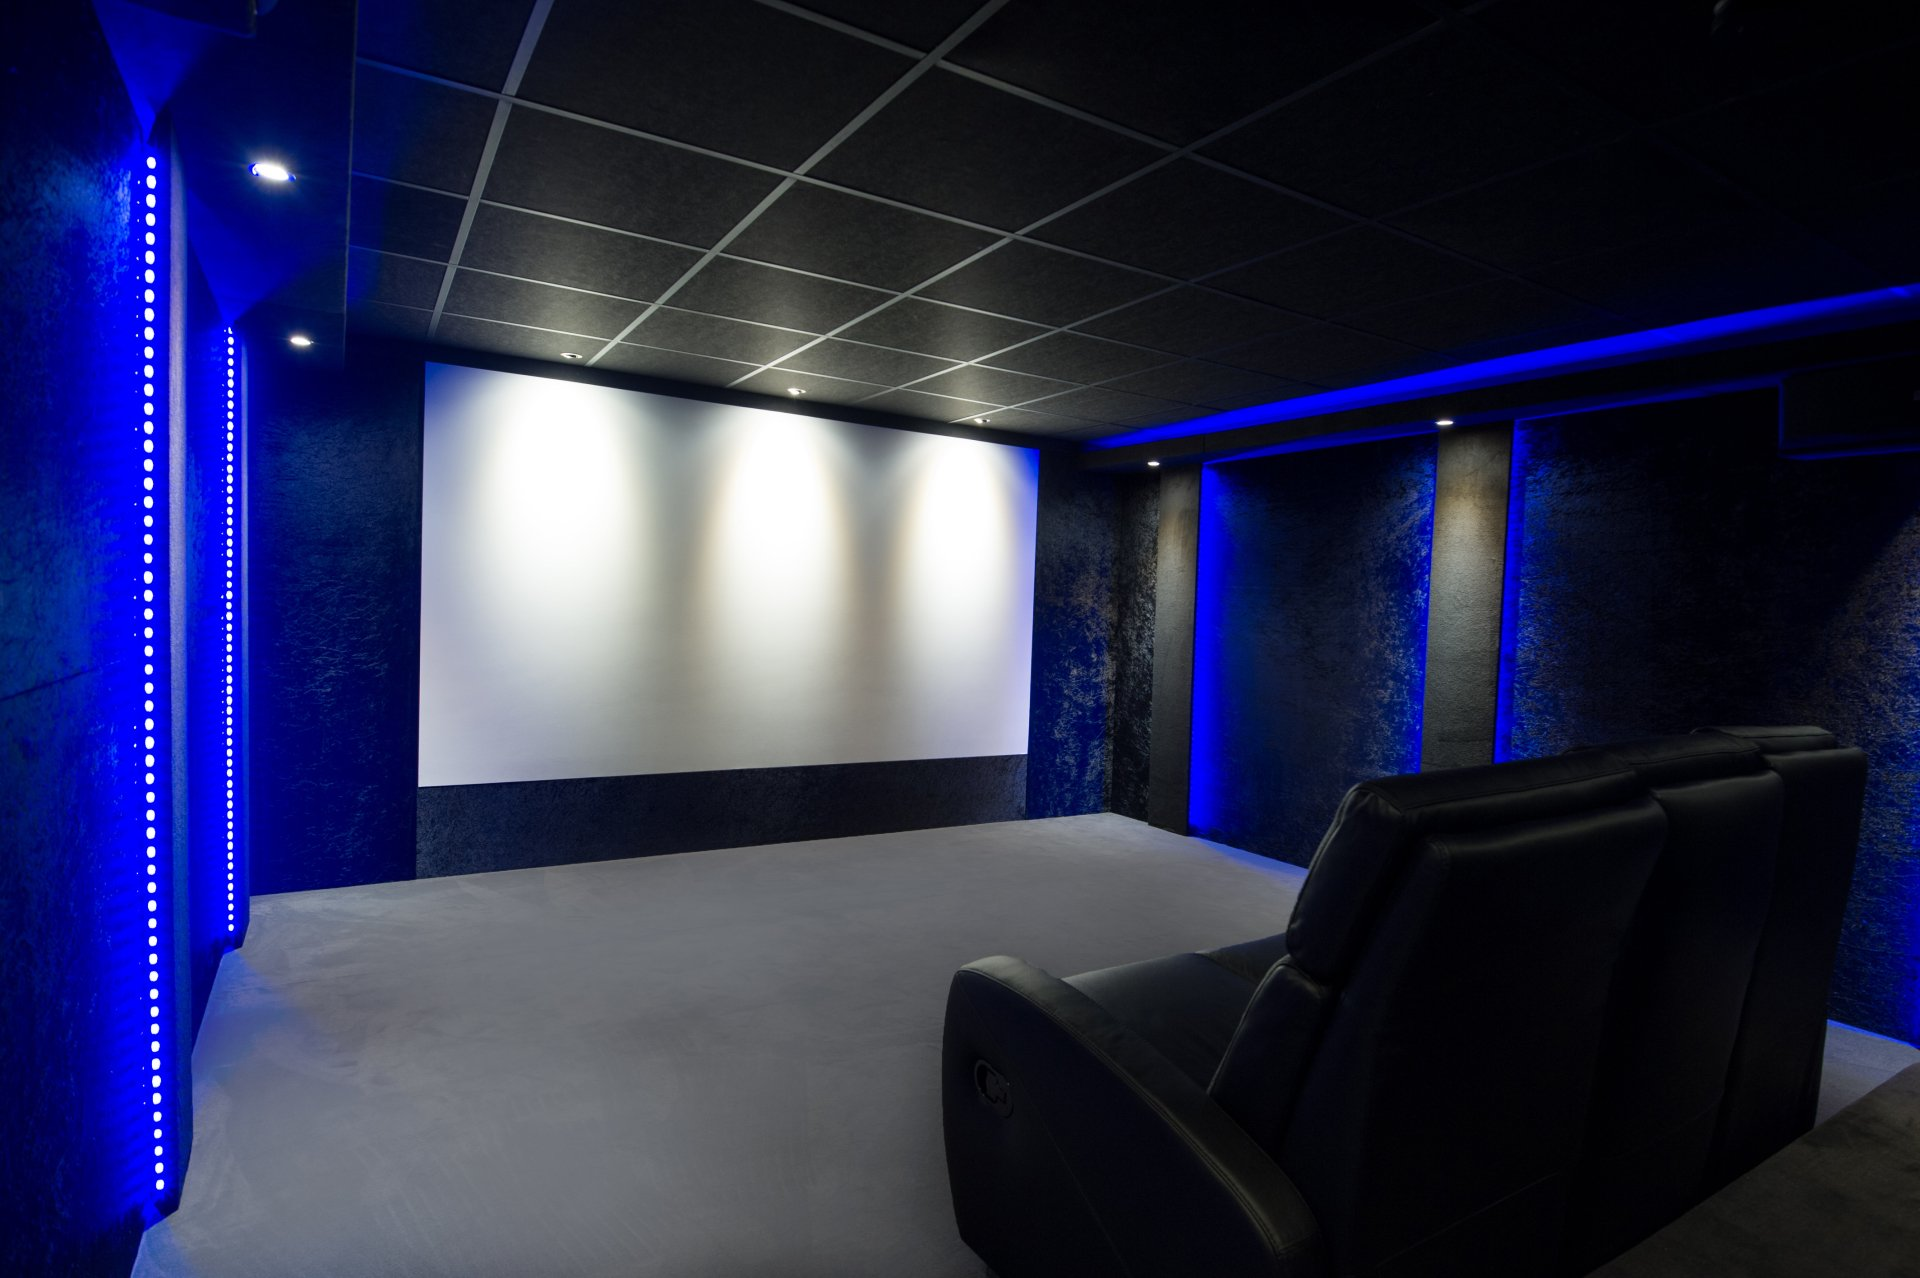 cinema chez soi le cinma with cinema chez soi simple le homecinma na plus de secret pour nous. Black Bedroom Furniture Sets. Home Design Ideas